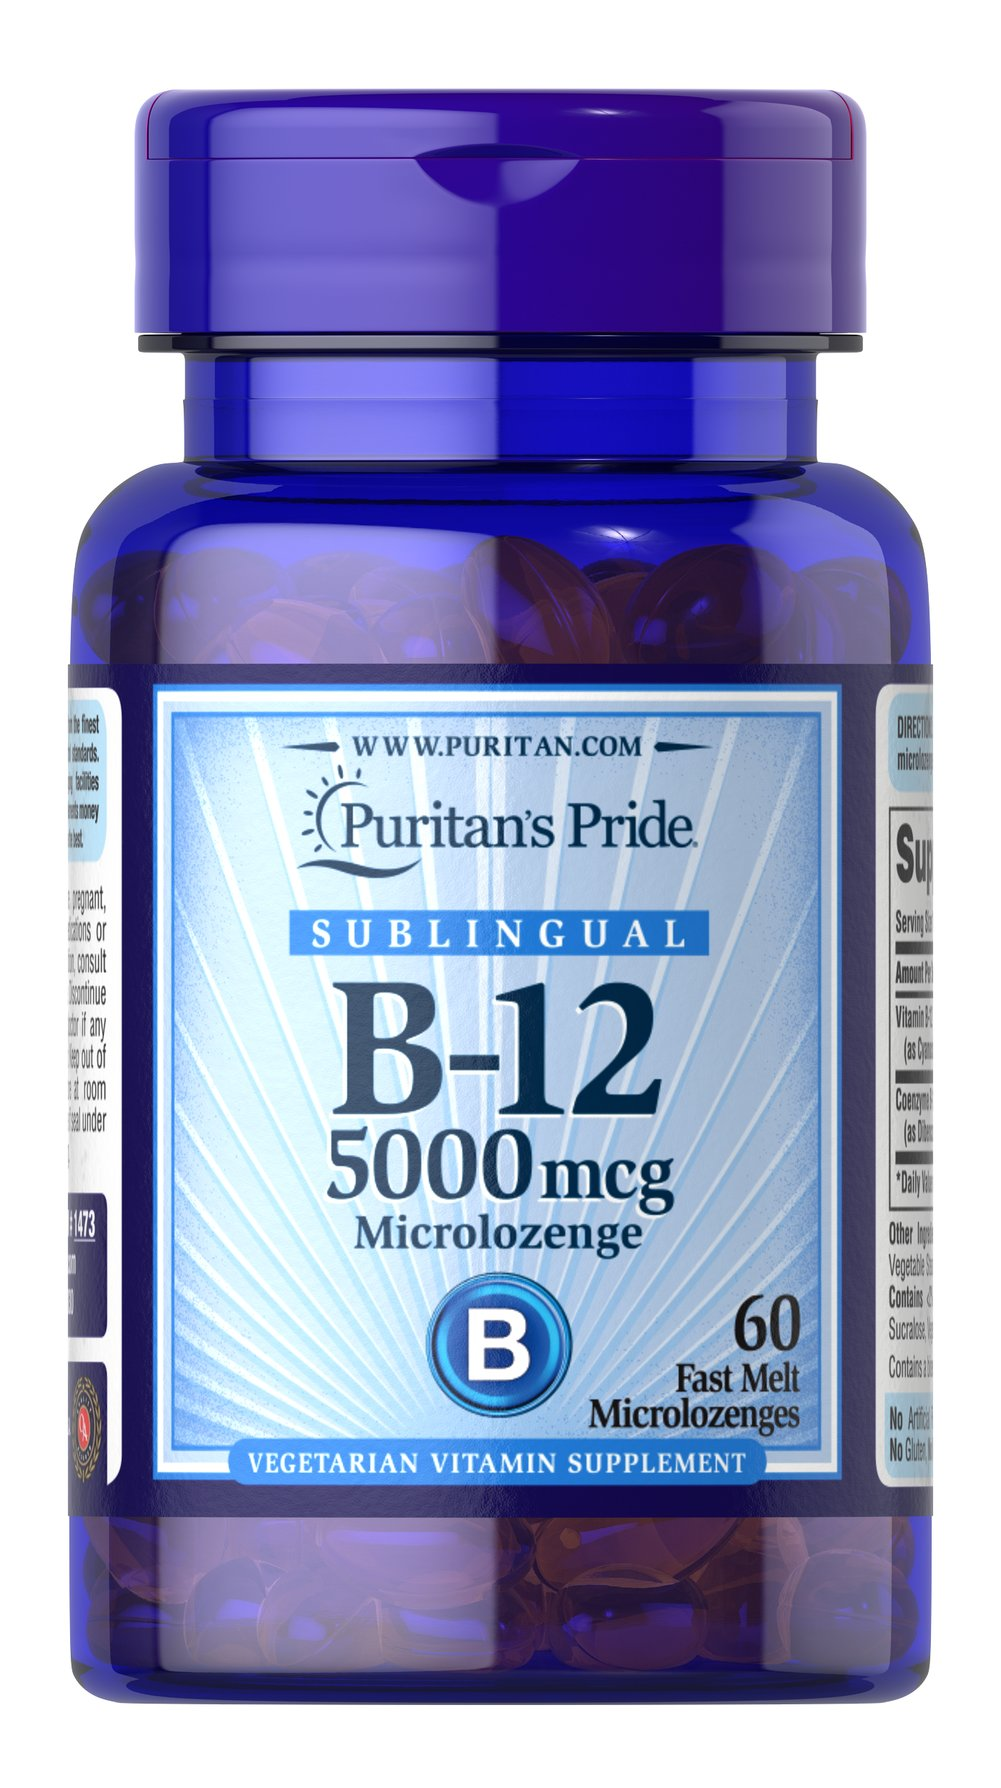 Vitamin B-12 5000 mcg Sublingual <p>Puritan's Pride's unique B-12  lozenges and dots deliver essential B vitamins for energy metabolism in the body.** Vitamin B-12 is also essential for the normal formation of blood cells, contributes to the health of the nervous system, and helps maintain circulatory health.** Adults can take one lozenge or dot daily with a meal. Place lozenge or dot under tongue for 30 seconds before swallowing.</p> 60 Microlozenges 5000 mcg $21.99